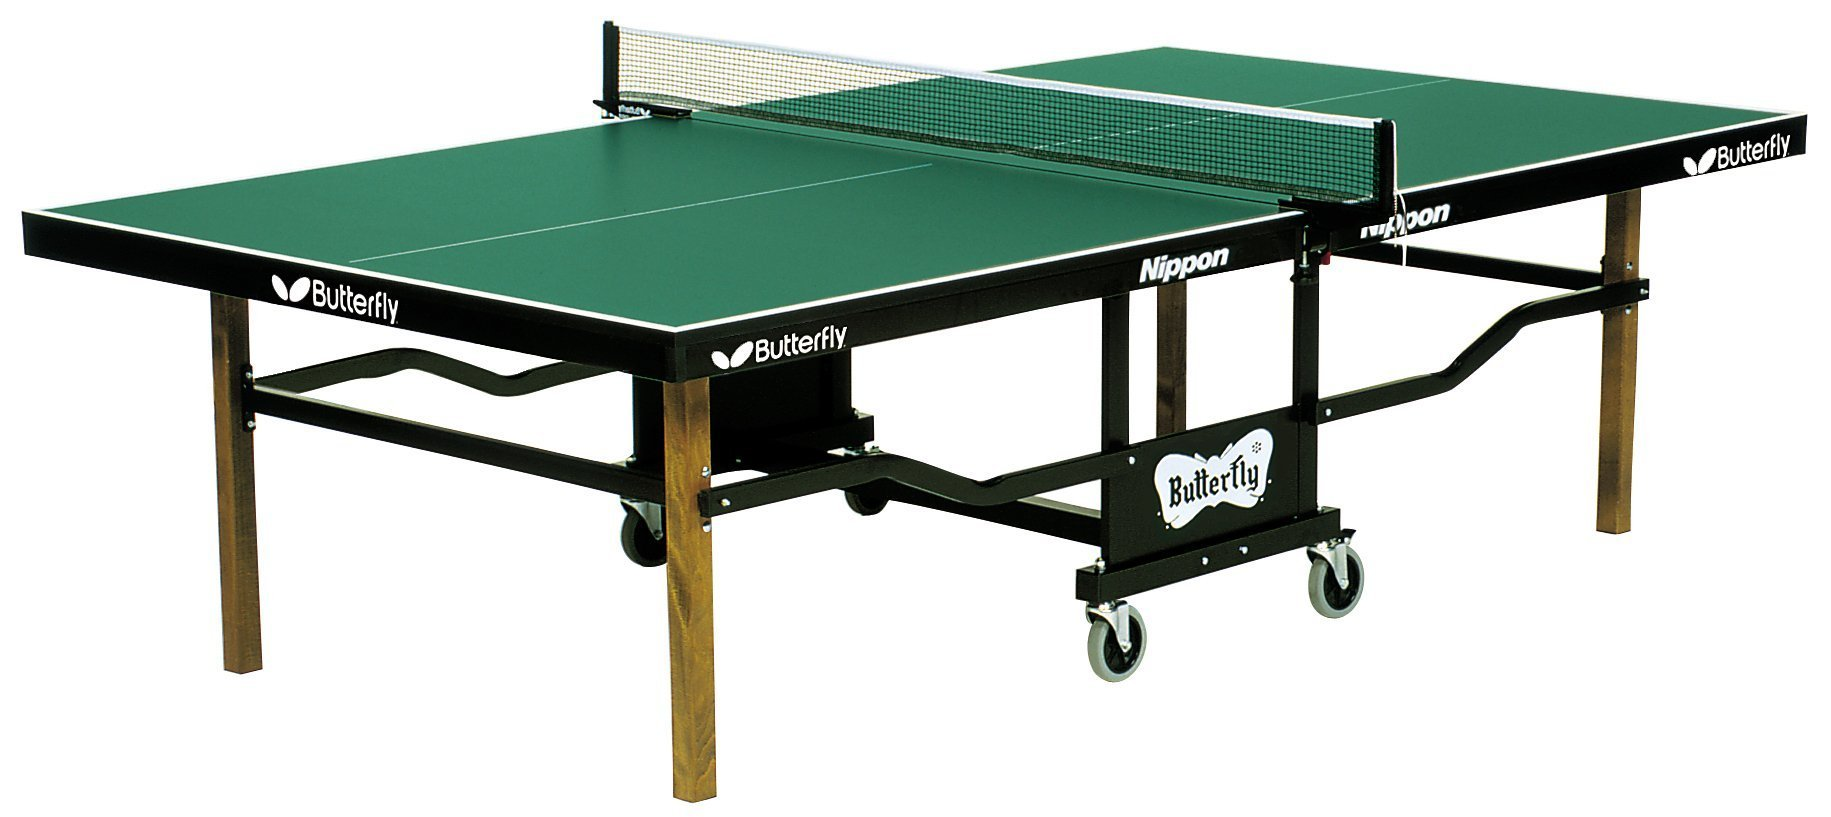 Butterfly Nippon Table Tennis Table by Butterfly